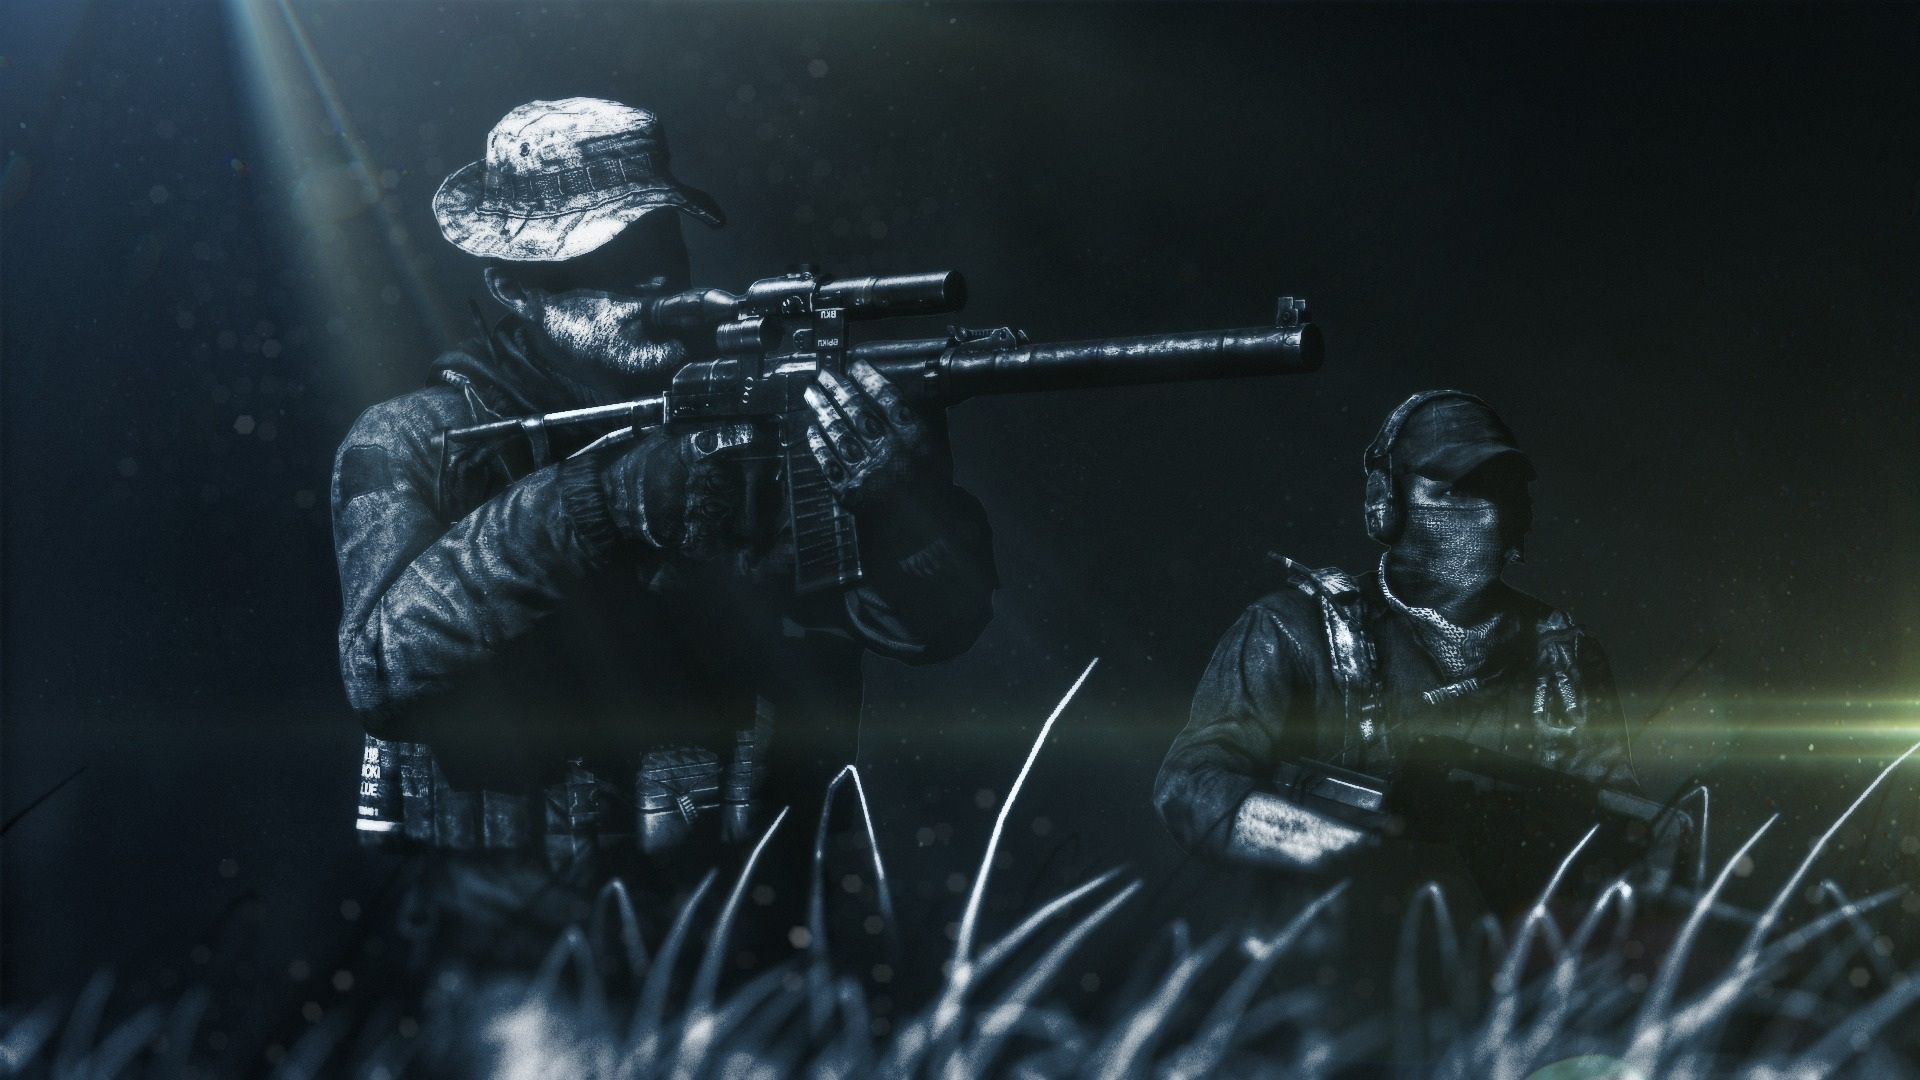 1920x1080 captain price sas cod soldiers call of duty desktop 1920x1080